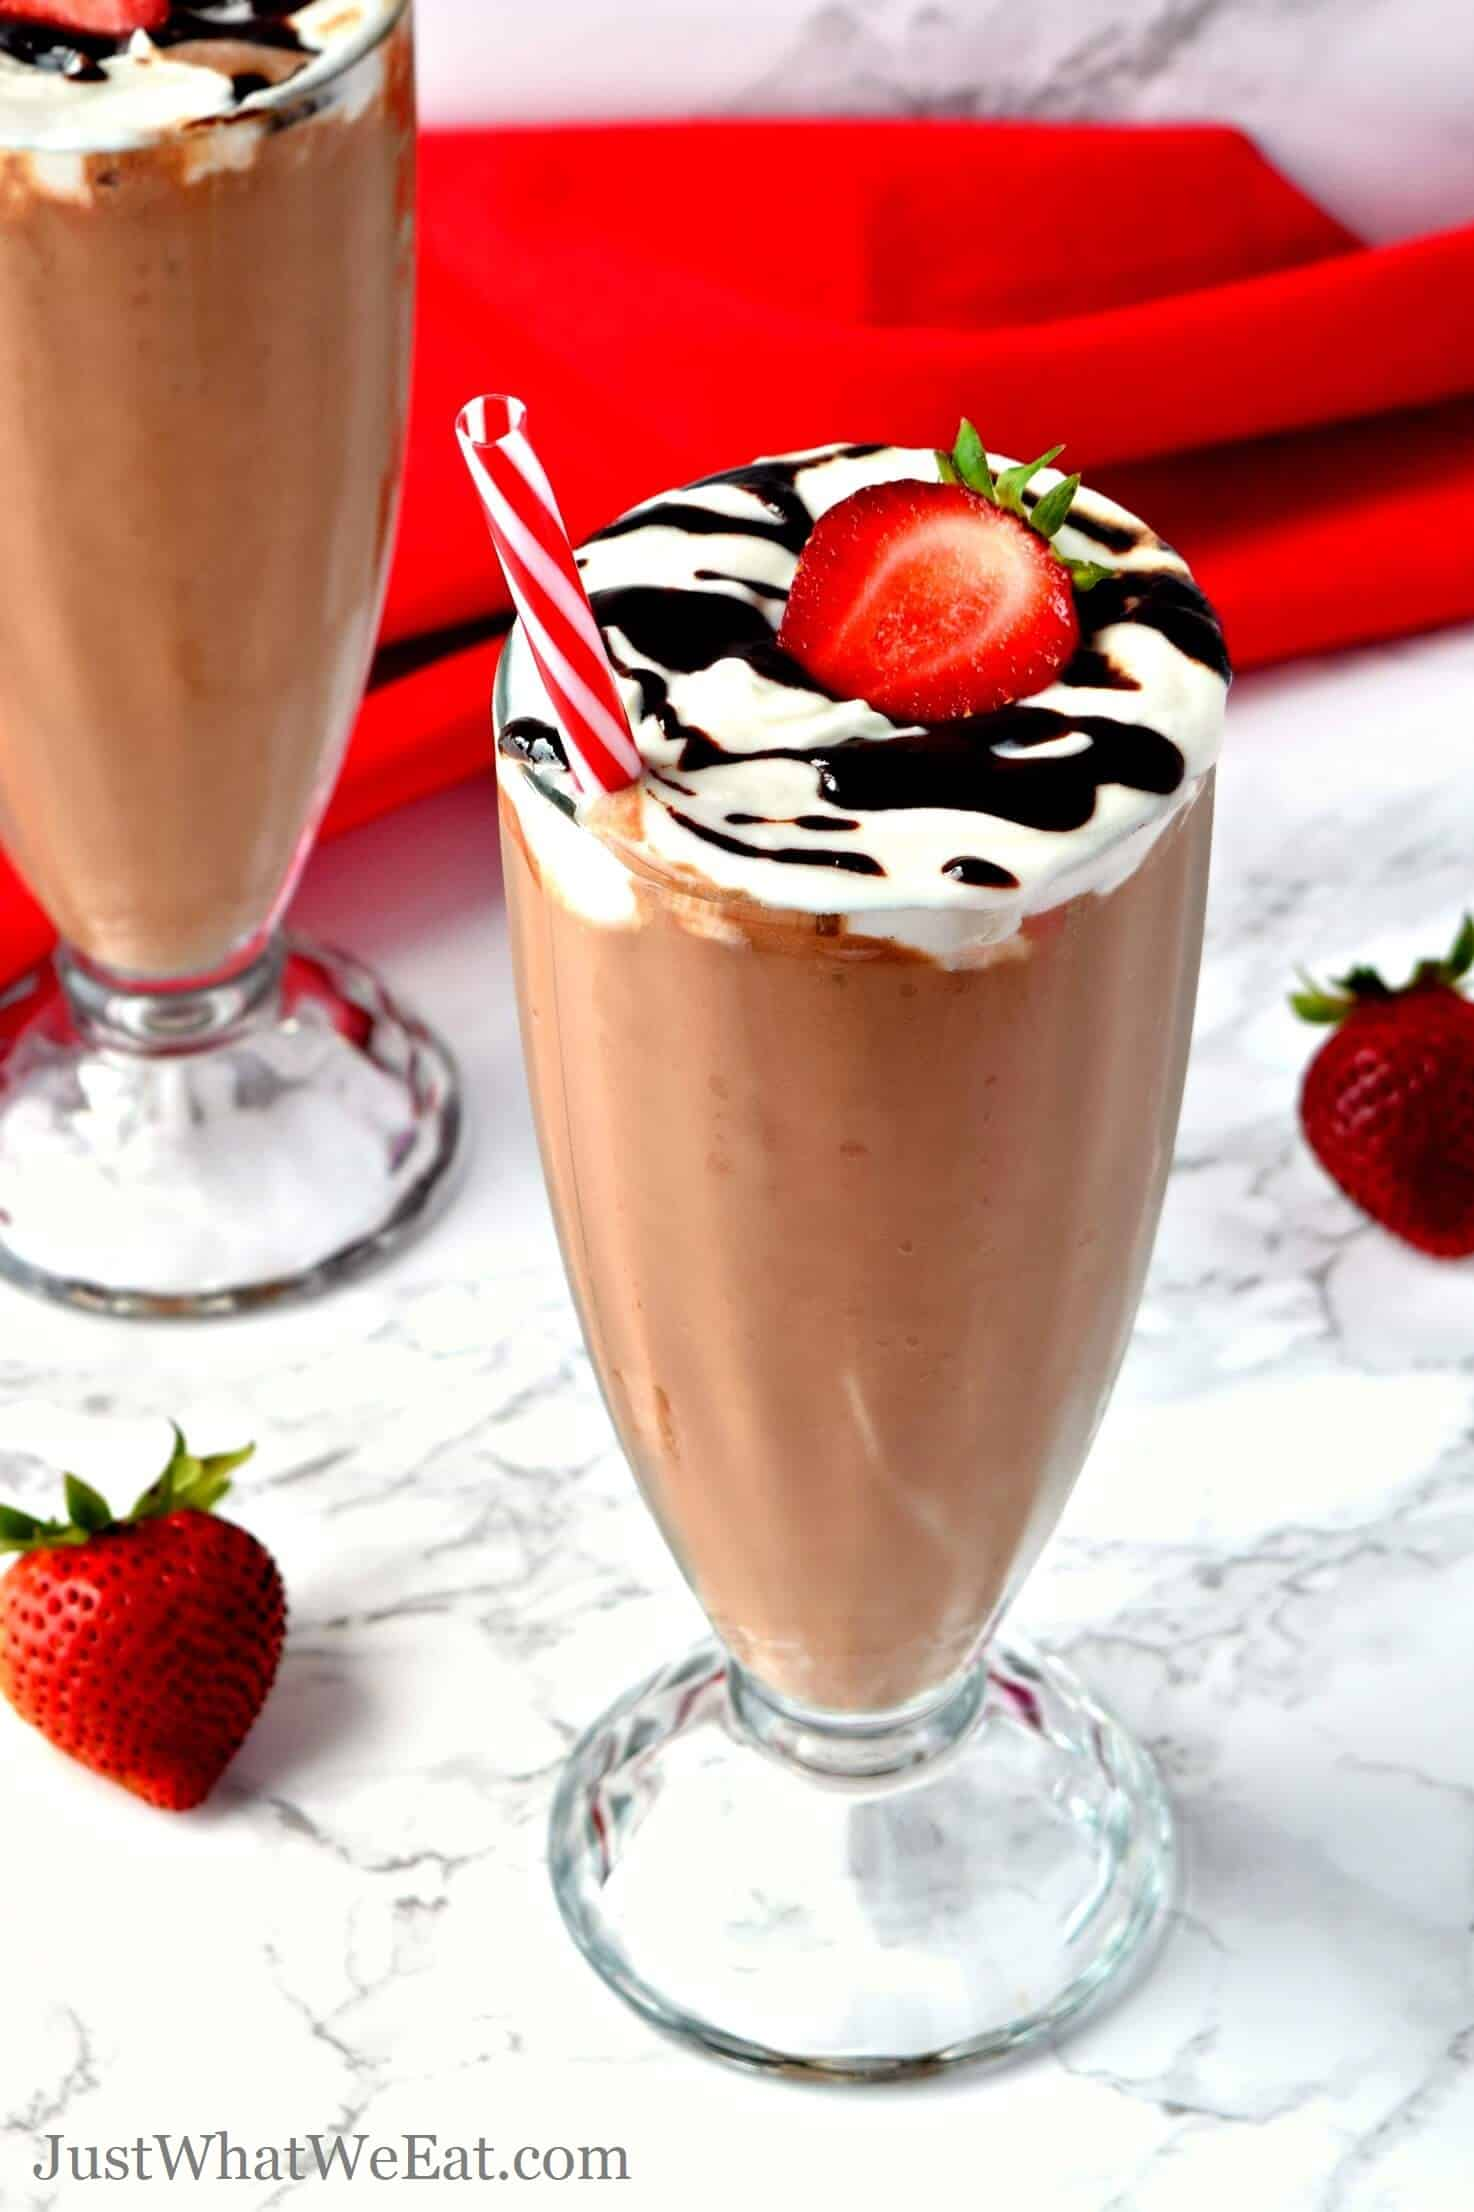 These Chocolate Banana Nice Cream Shakes are so delicious you would never know they are actually healthy! They are so chocolaty and this recipe is SO easy to make.